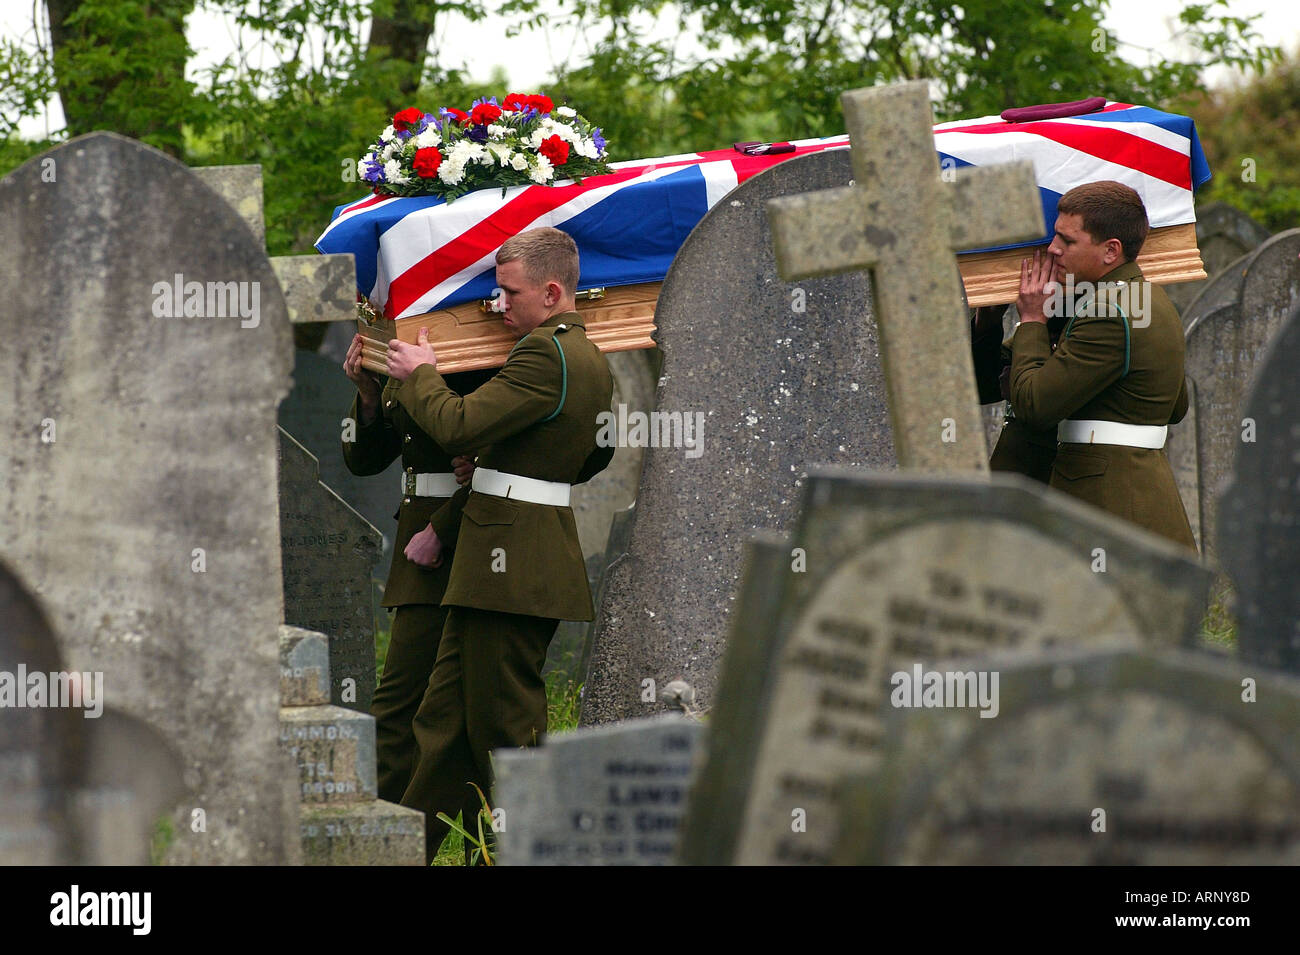 Funeral of Pte. Andrew Kelly (Parachute Regt.) taking place at Maker in Cornwall. He was one of the youngest killed in Iraq. - Stock Image